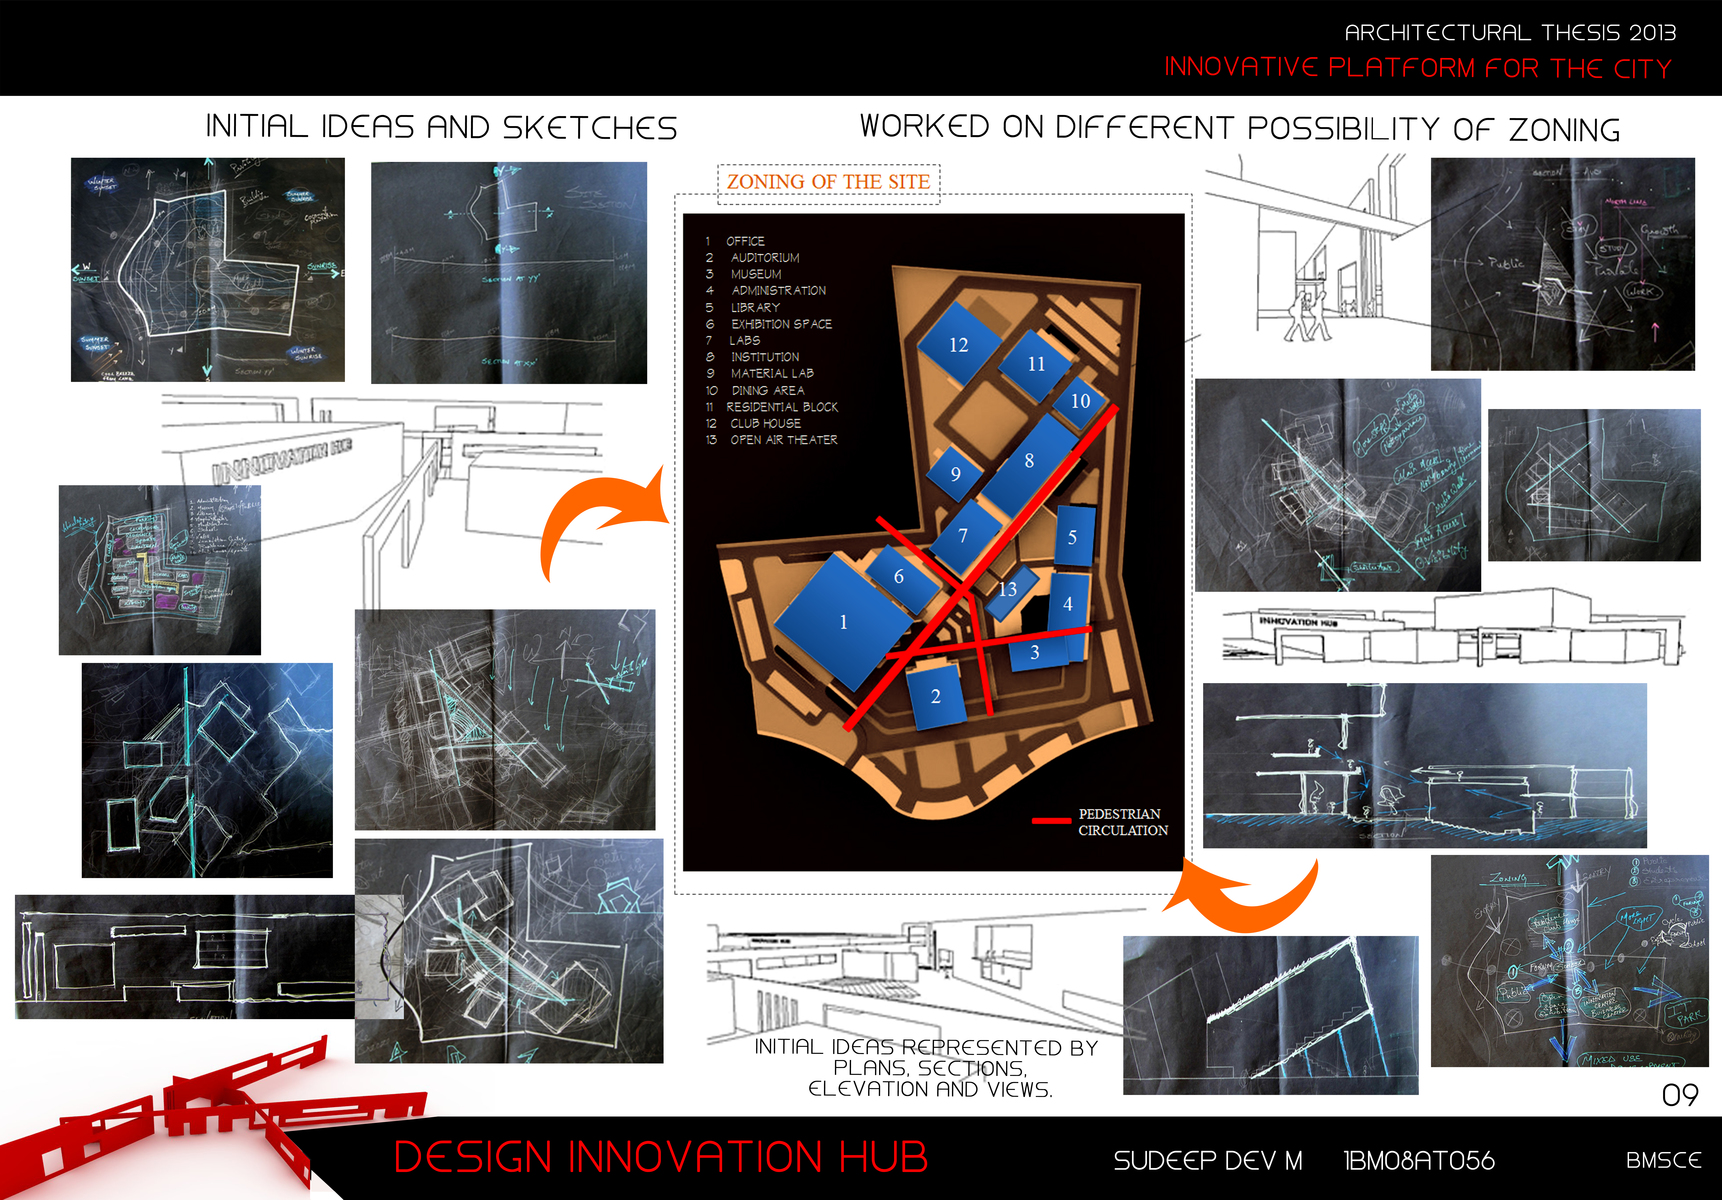 Architectural Thesis 2013 - Design Innovation Hub (Hebbal